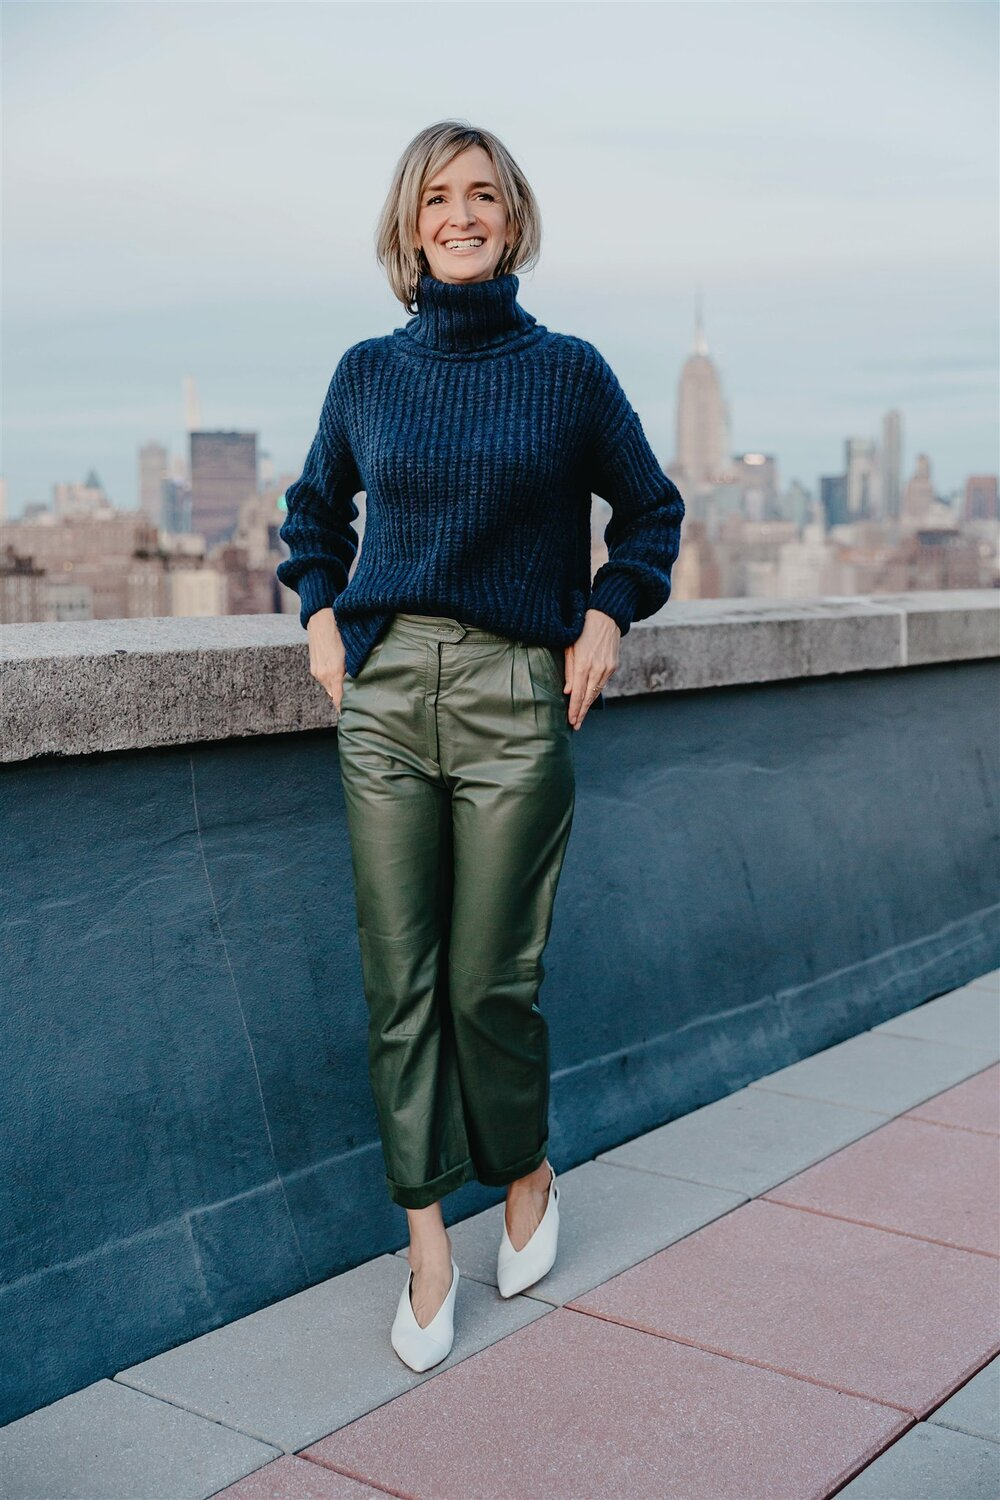 Ali wears:  ALI T-neck Sweater  (her name-sake sweater) ( SHOP HERE ) styled back to Ali's own vintage leather pant